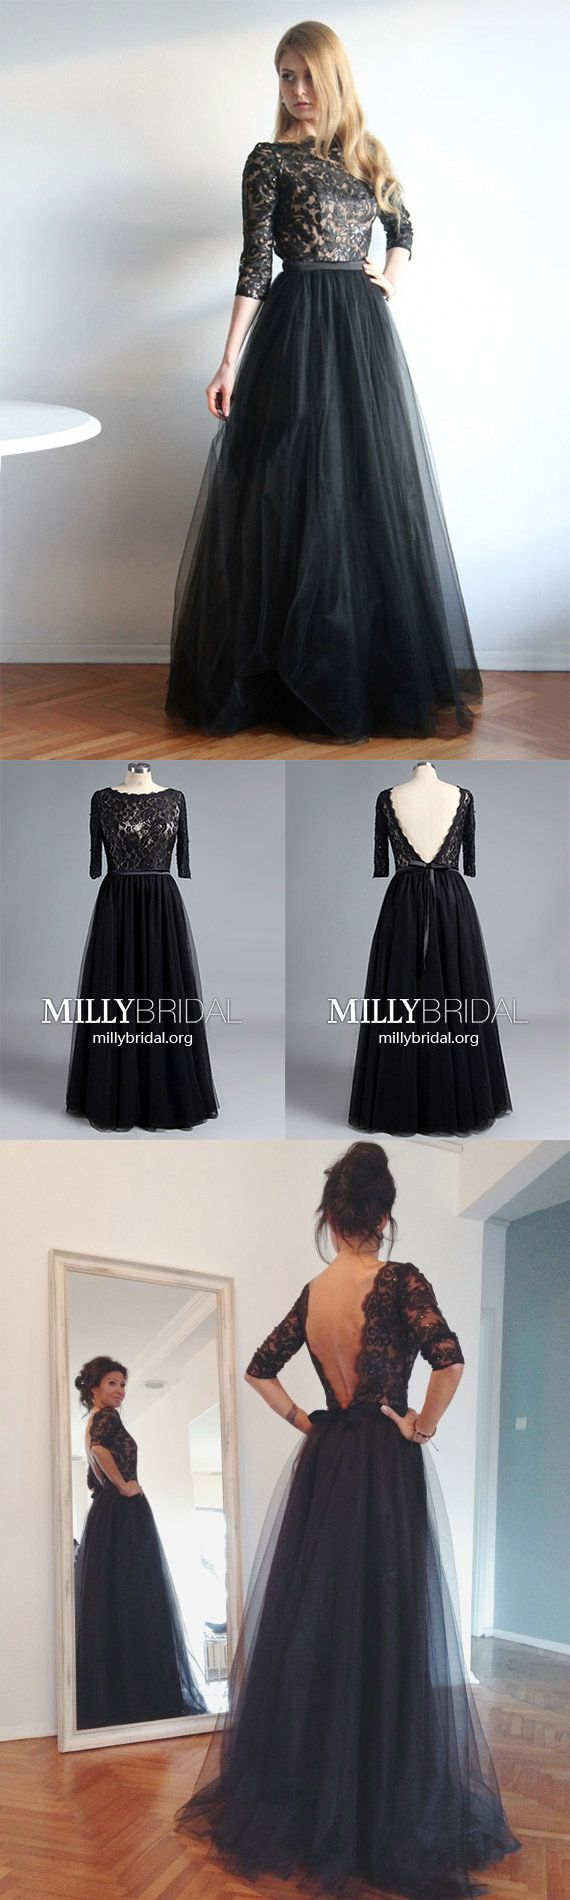 Modest long prom dresses with sleevesblack prom dresses alinesexy